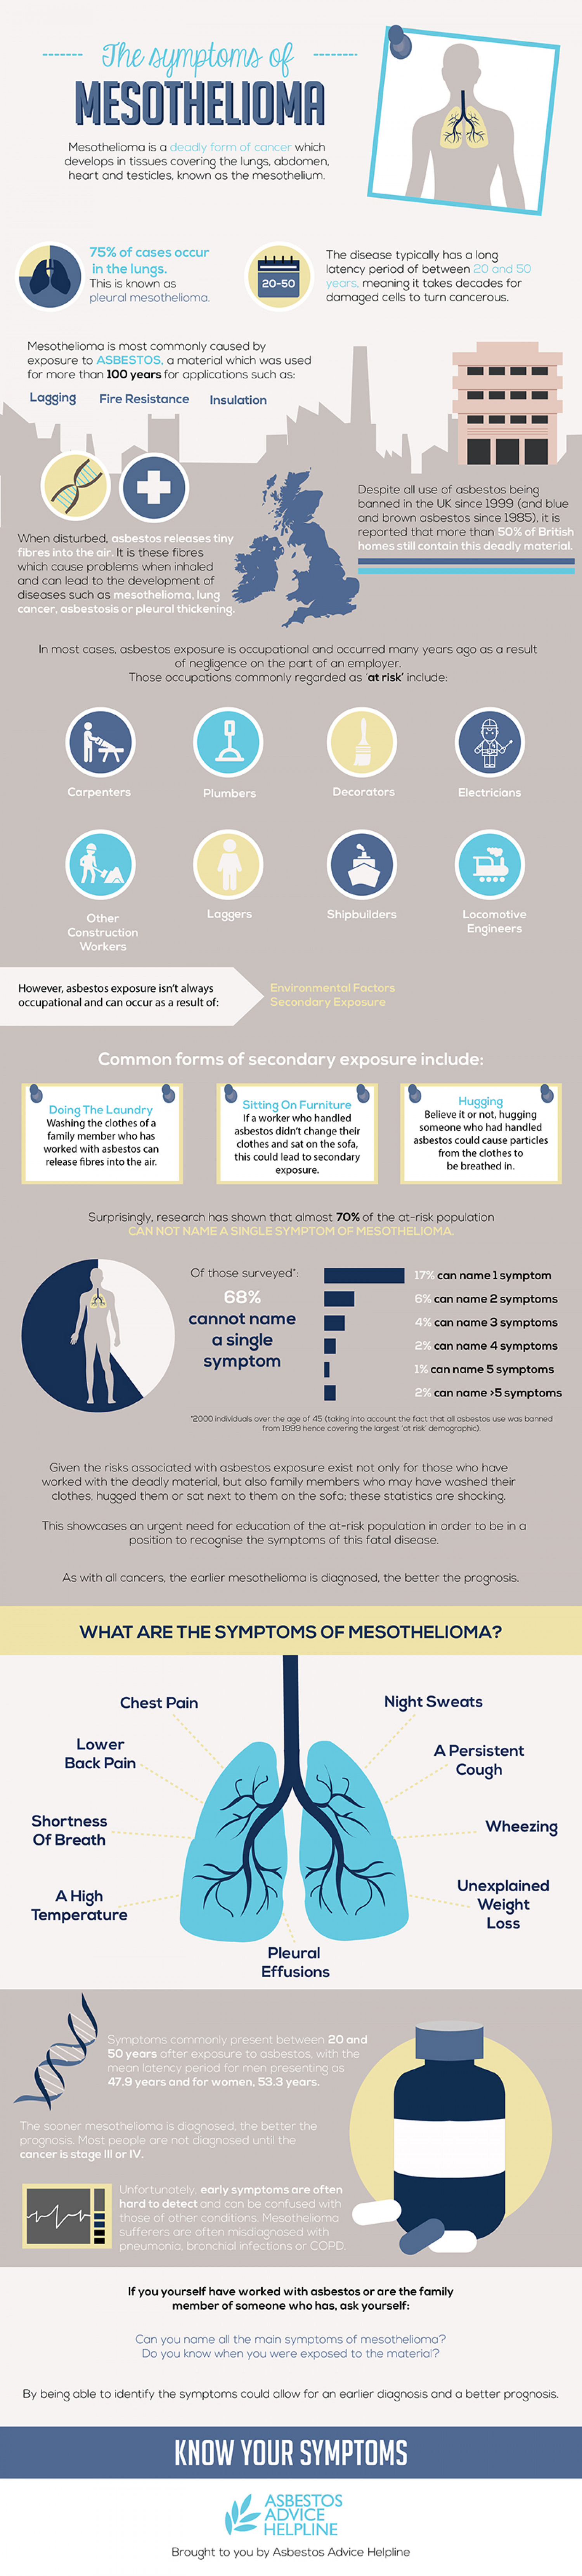 The Symptoms Of Mesothelioma Infographic